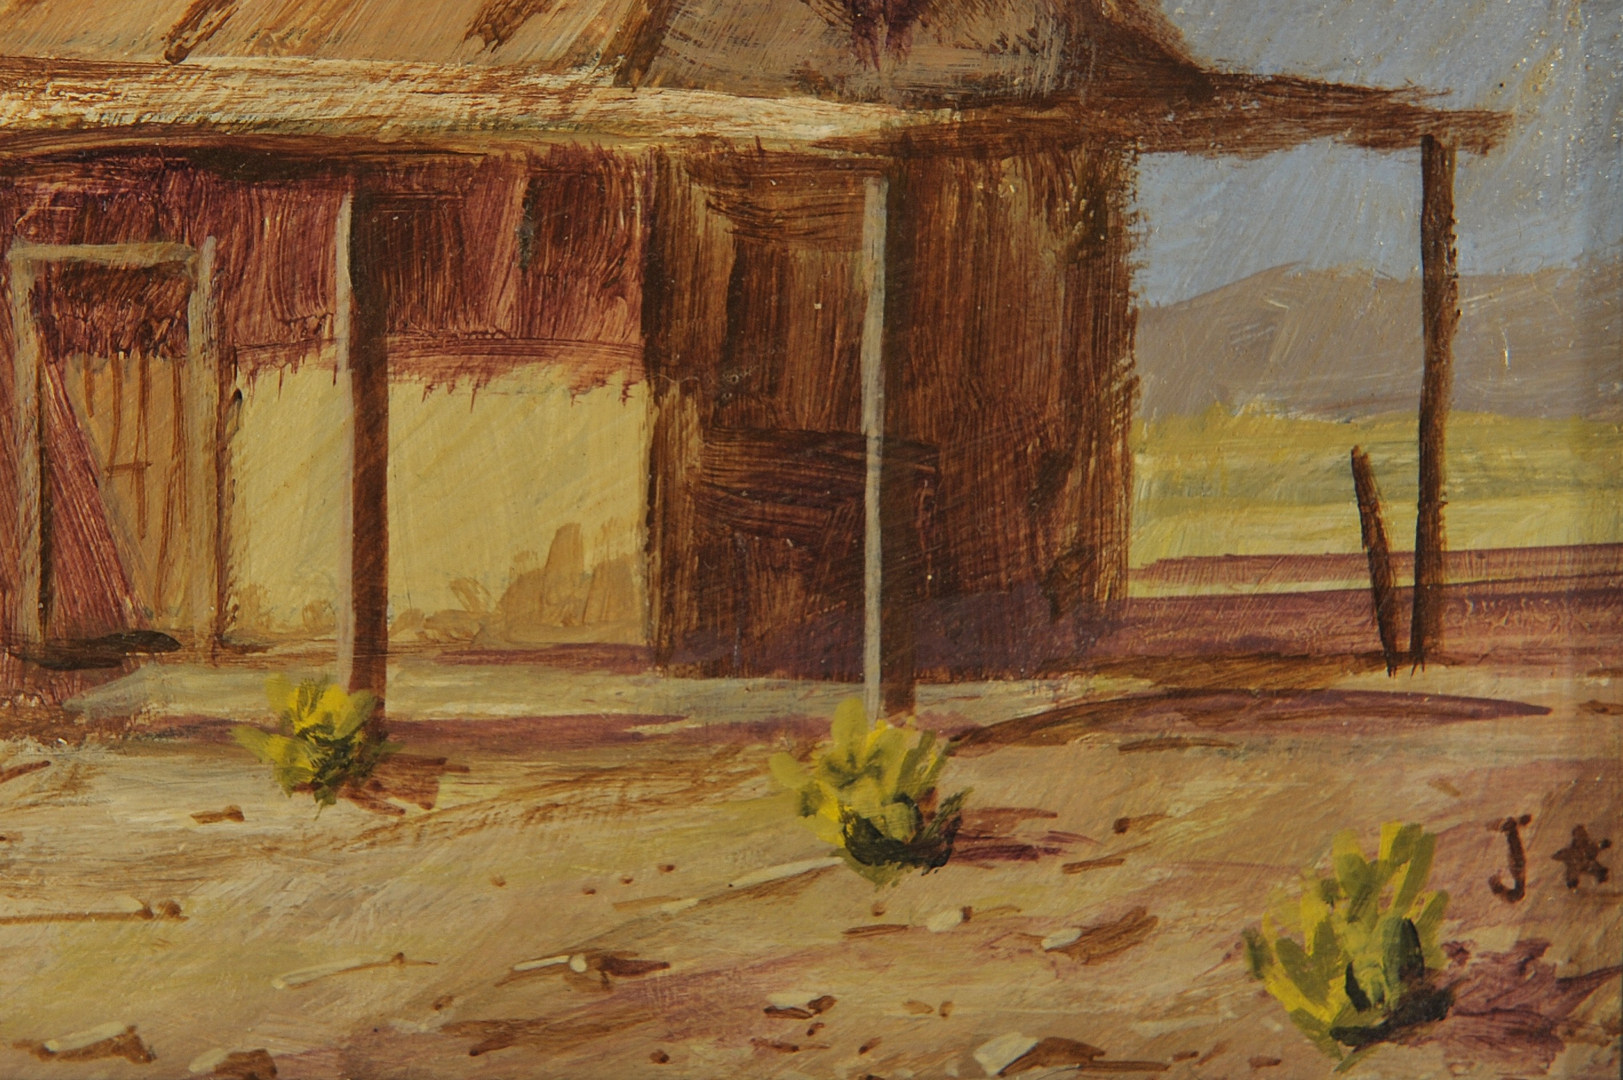 Lot 528: Pair of Southwestern scenes, oil on board